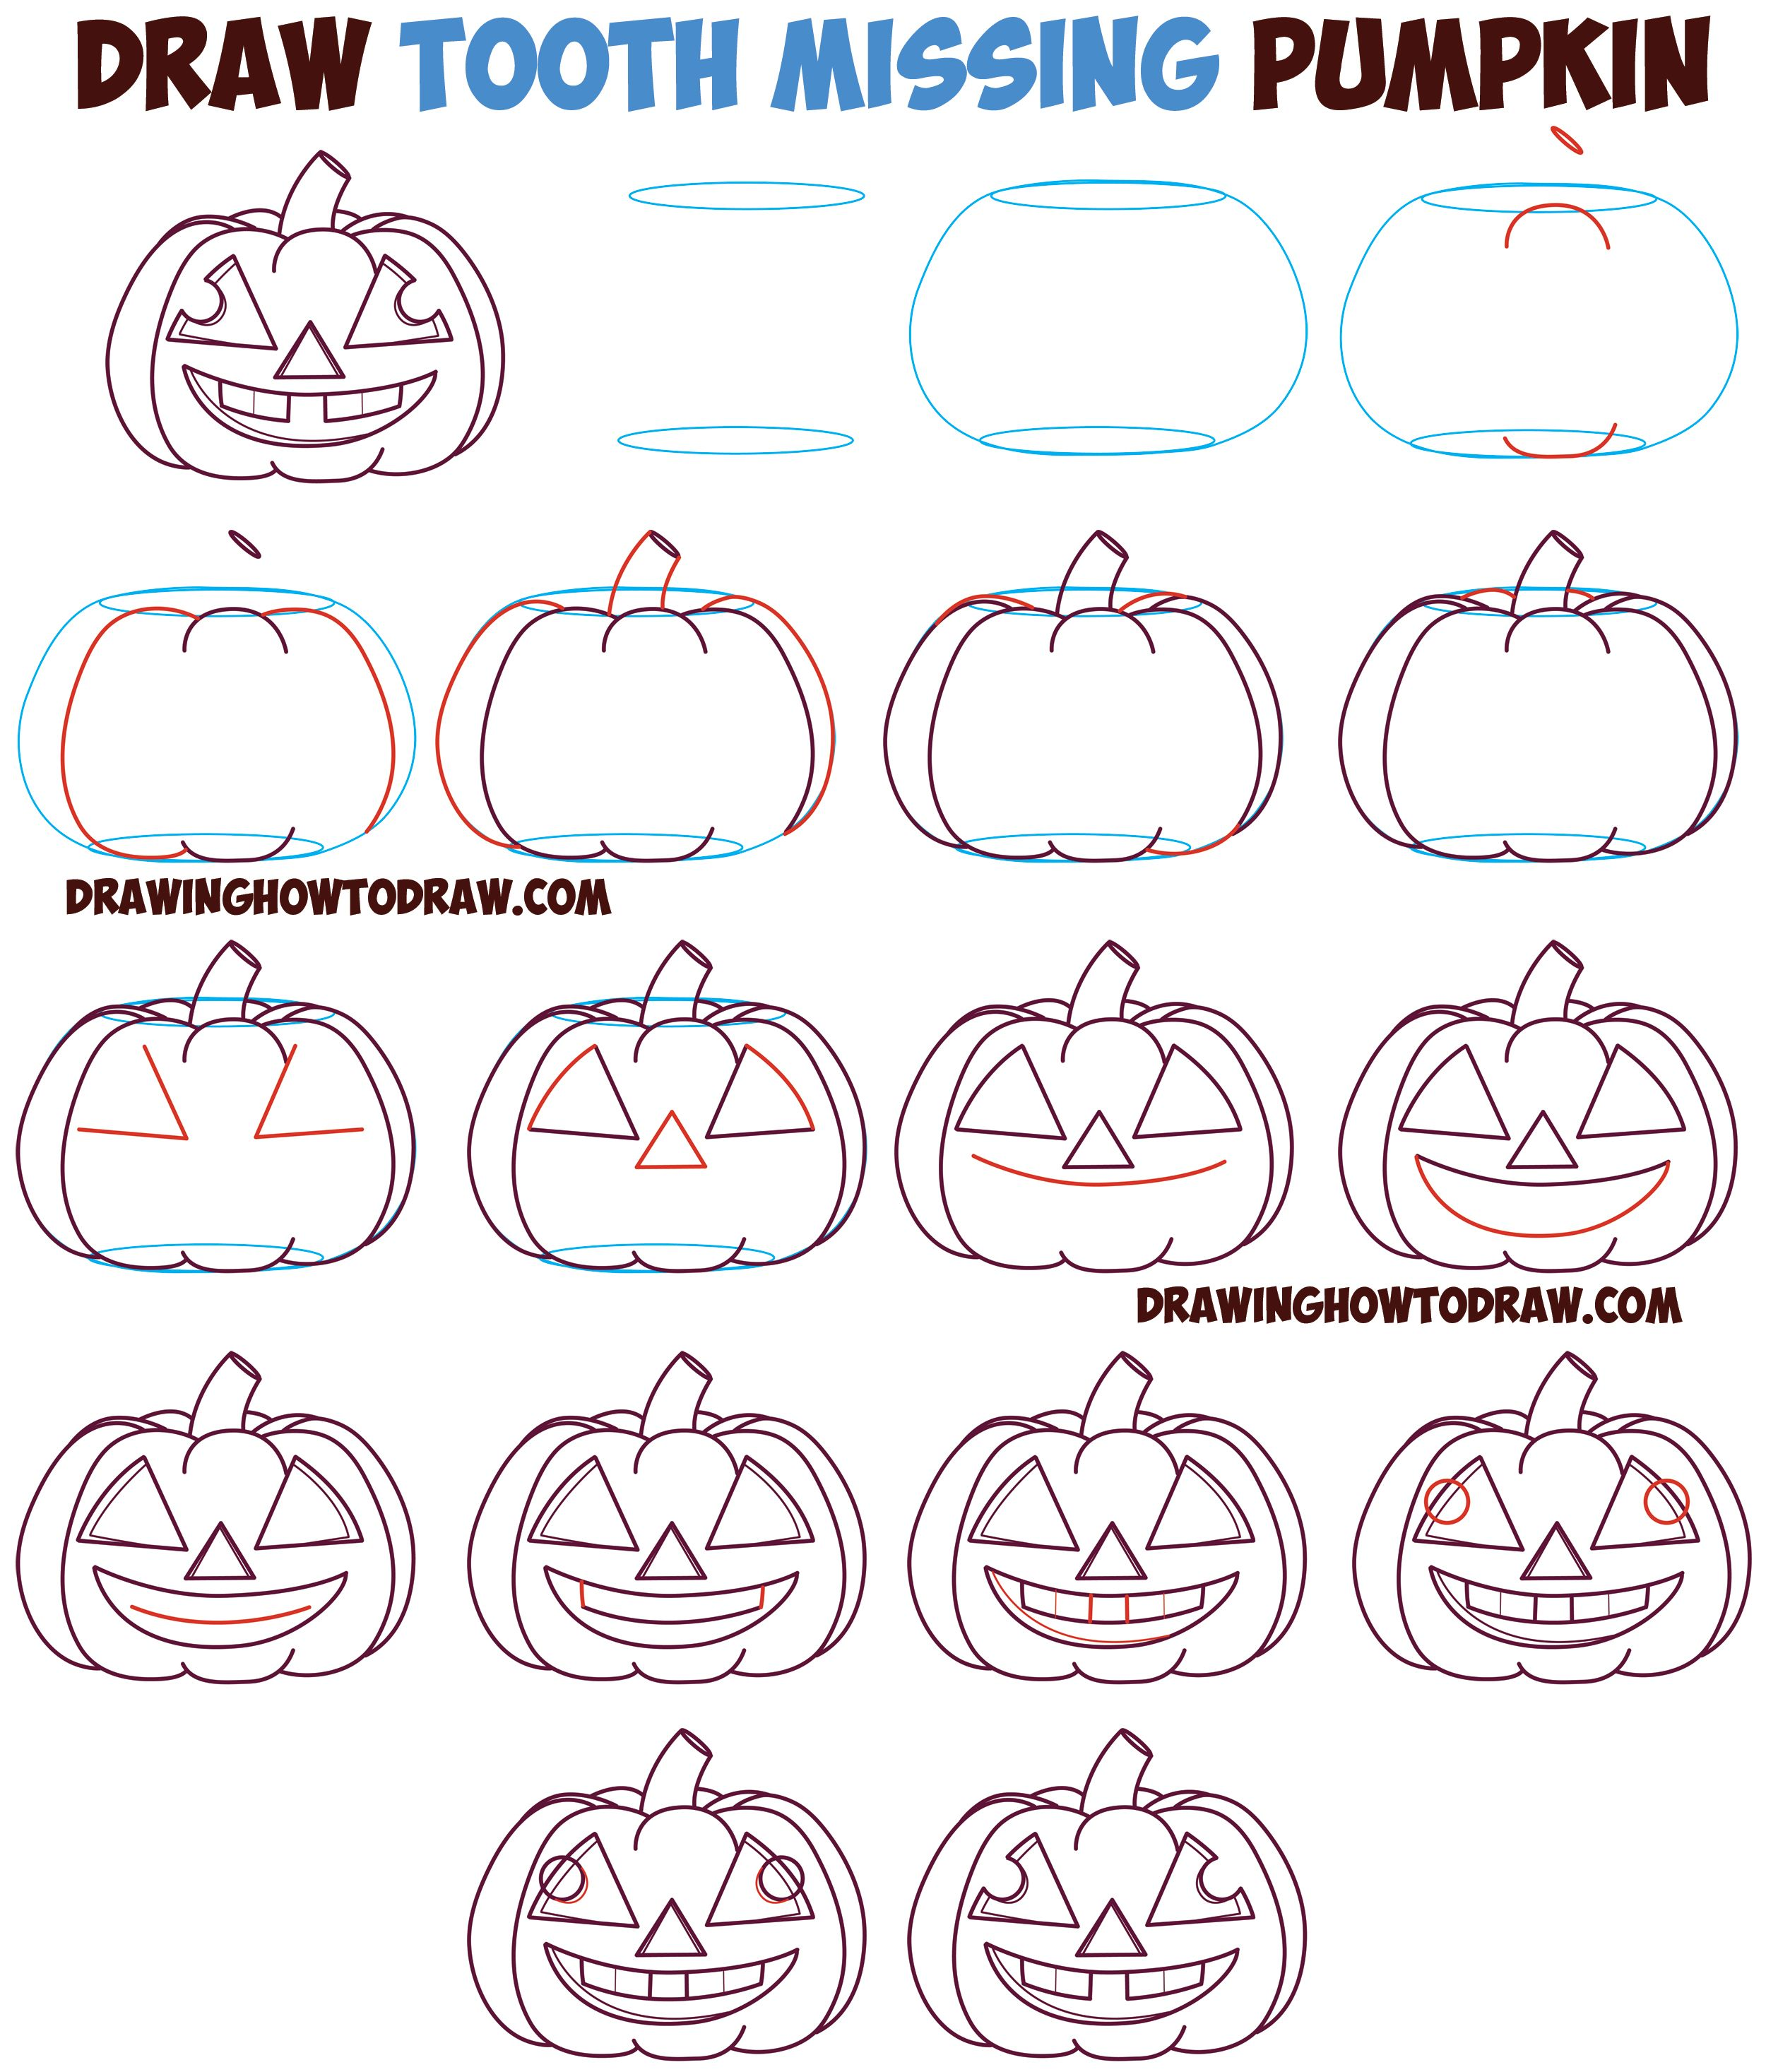 Huge Guide To Drawing Cartoon Pumpkin Faces Jack O Lantern Faces Expressions Emotions Easy Step By Step Drawing Tutorial For Kids On Halloween How To Dr Drawing Tutorials